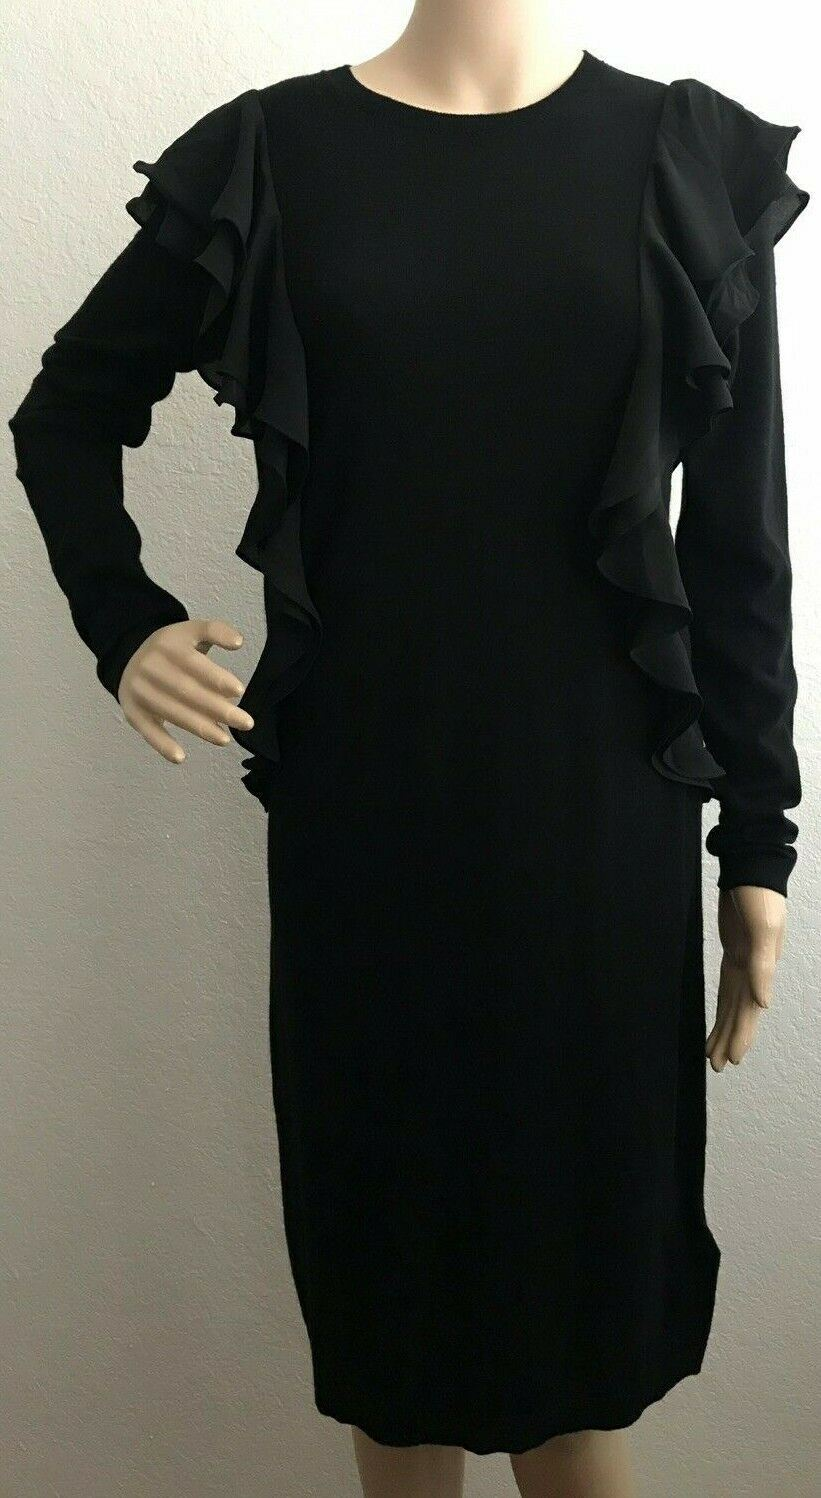 NWT Polo Ralph Lauren Women's Black  Ruffled Cotton Sweater Dress Size XL/TG